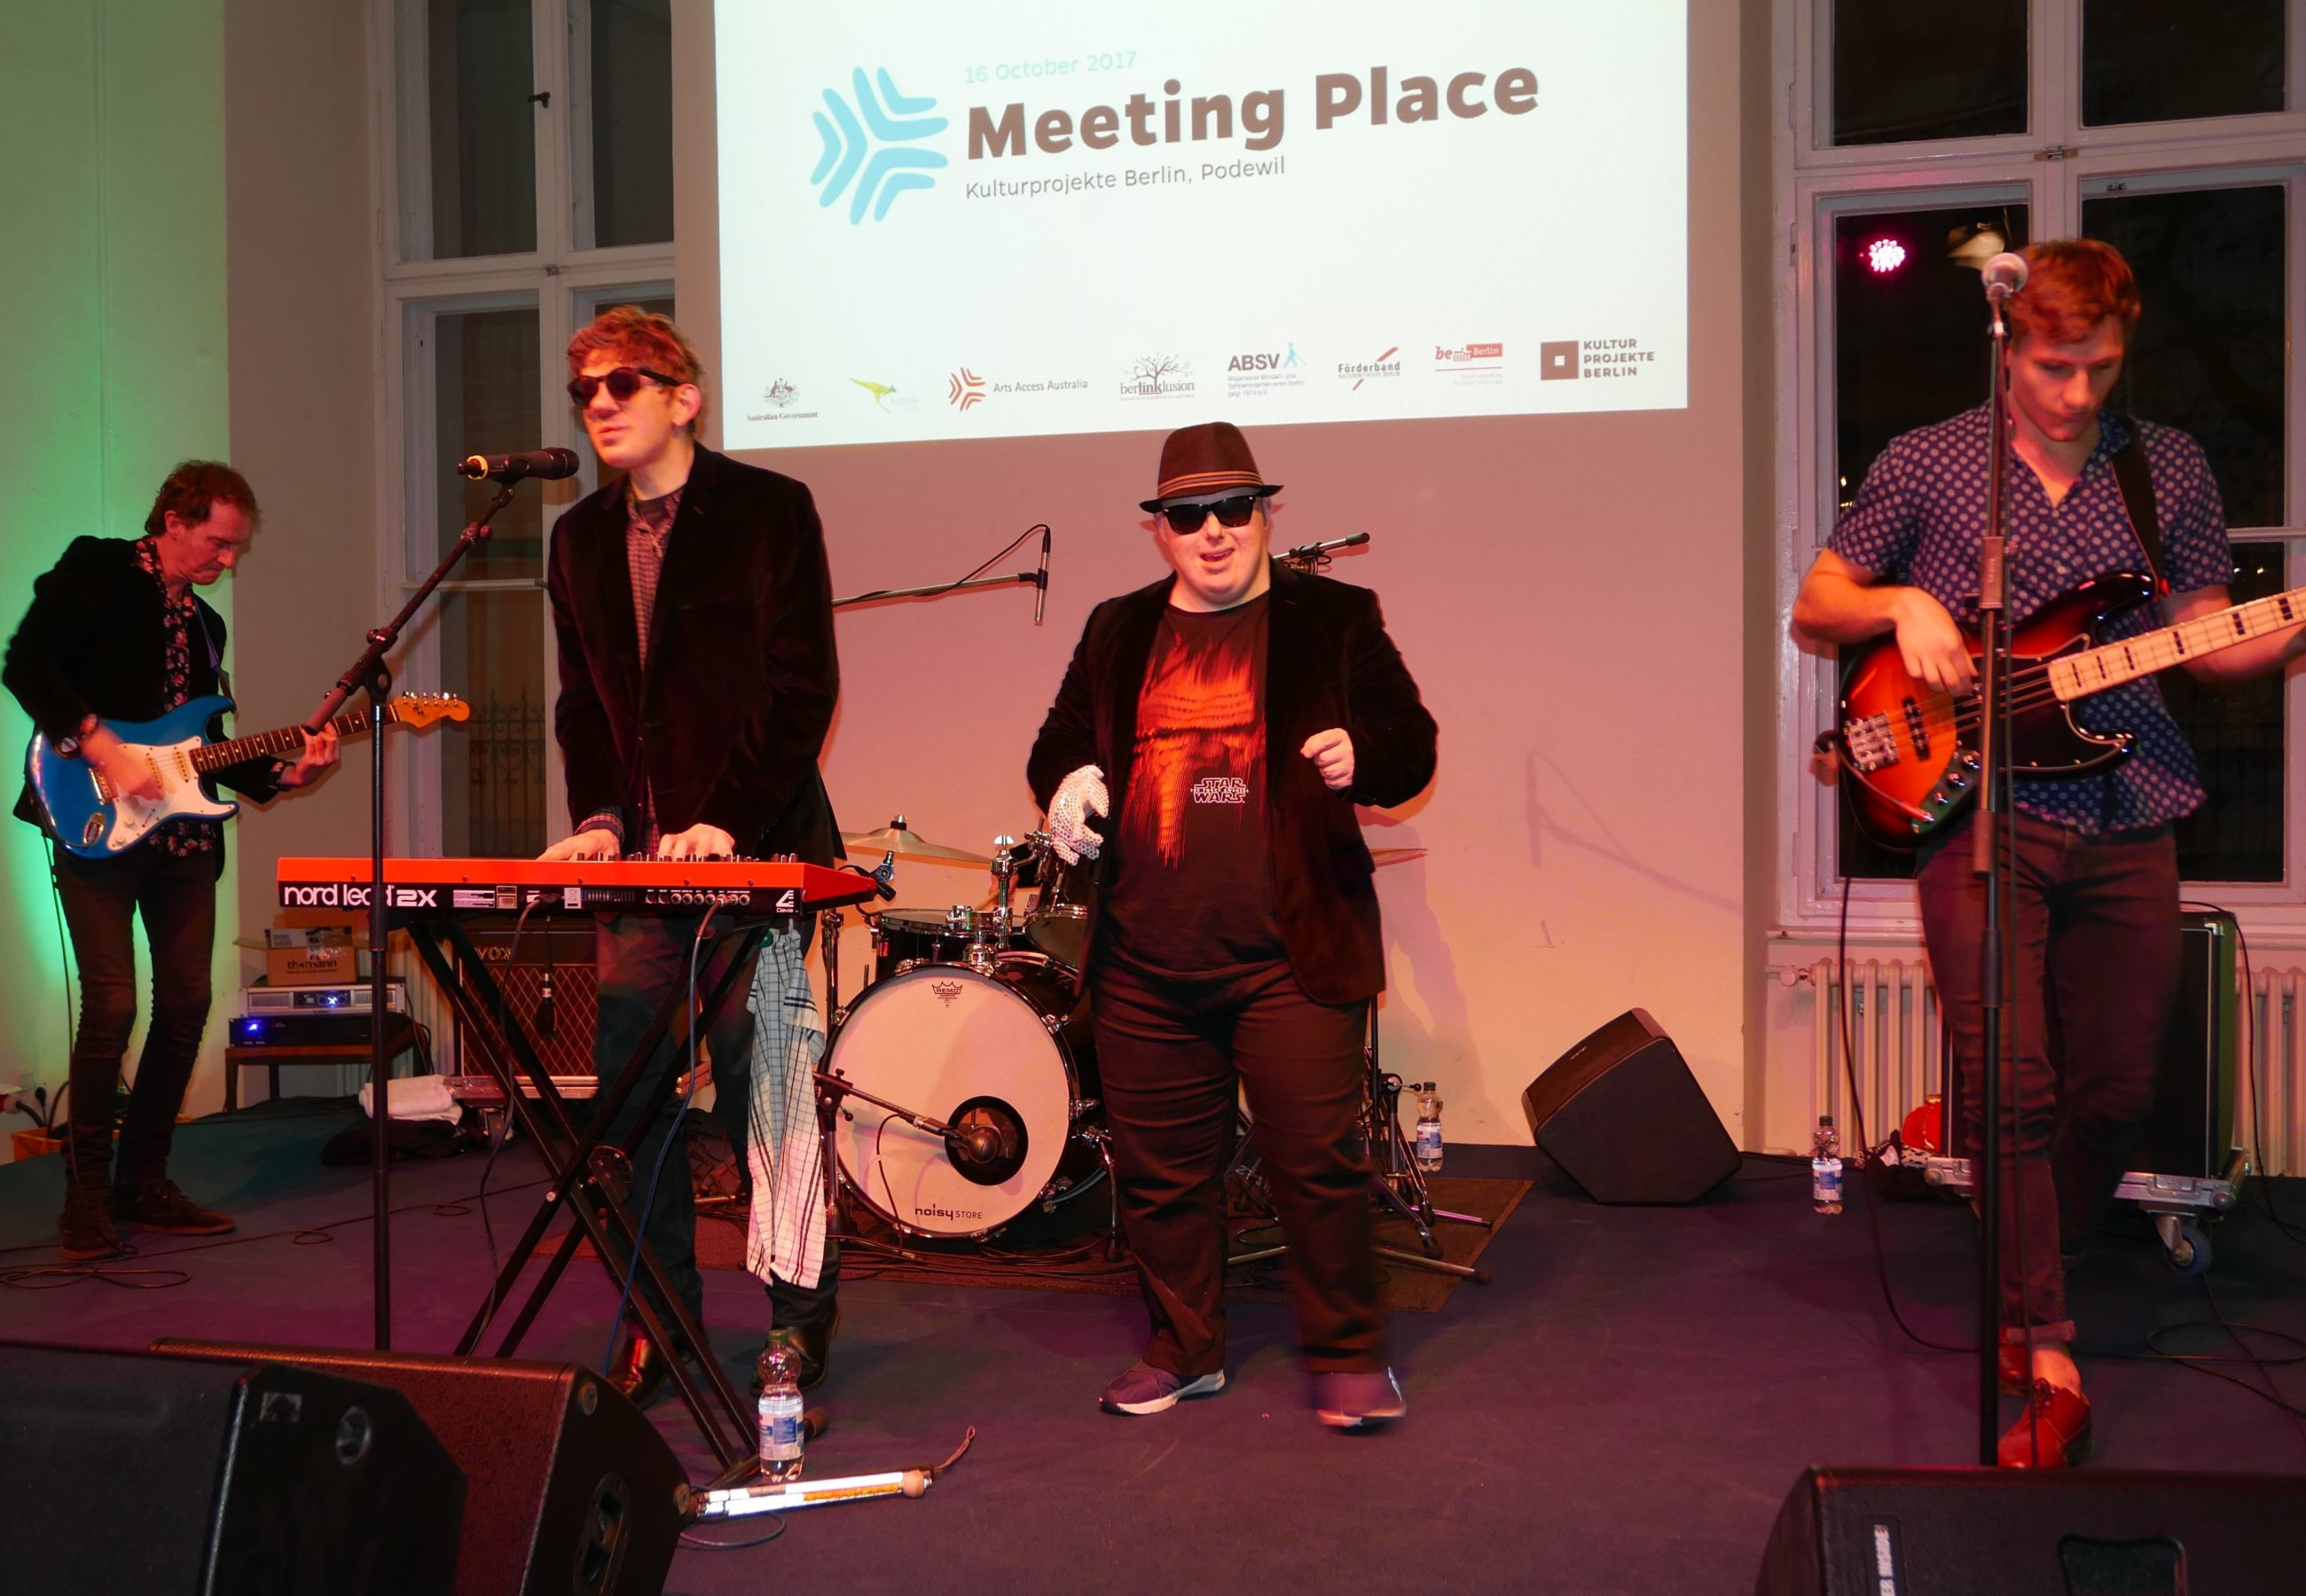 Four musicians perform on stage in a band below a sign that reads Meeting Place.